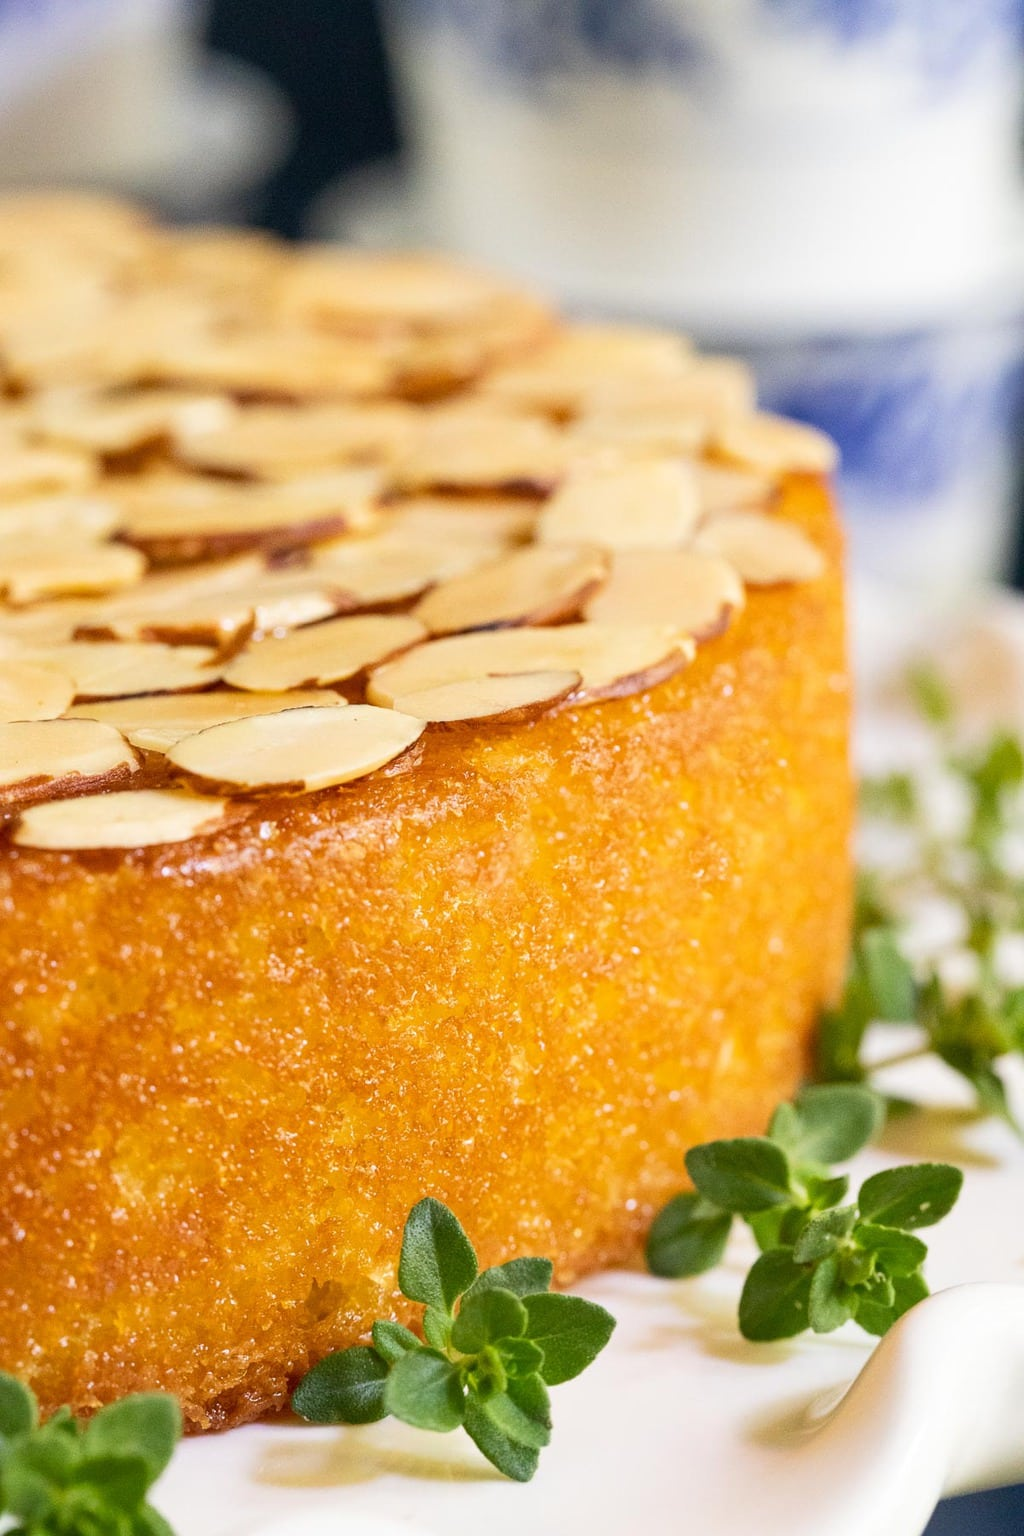 Vertical extreme closeup of the side of a Ridiculously Easy Almond Coconut Cake garnished with thyme leaves.